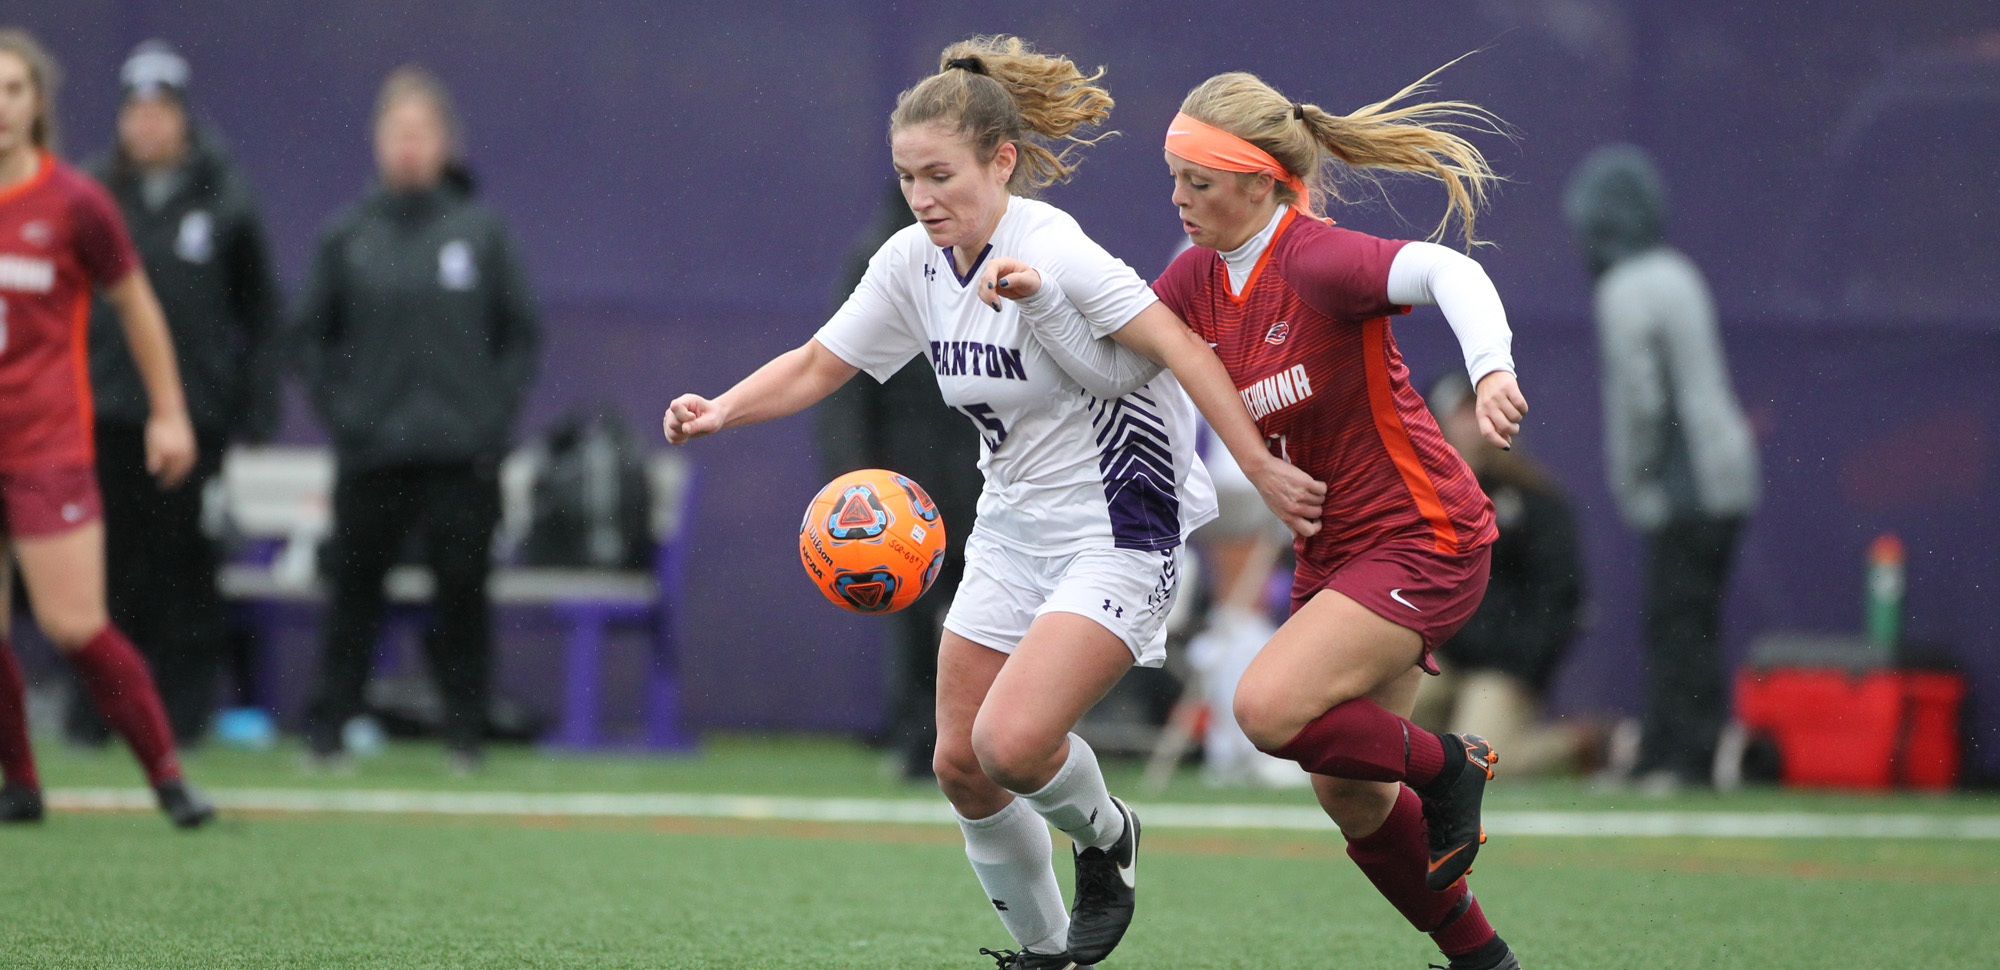 Grace Elliott has been named The University of Scranton Athlete of the Week after scoring a game-winning goal in the NCAA Tournament.